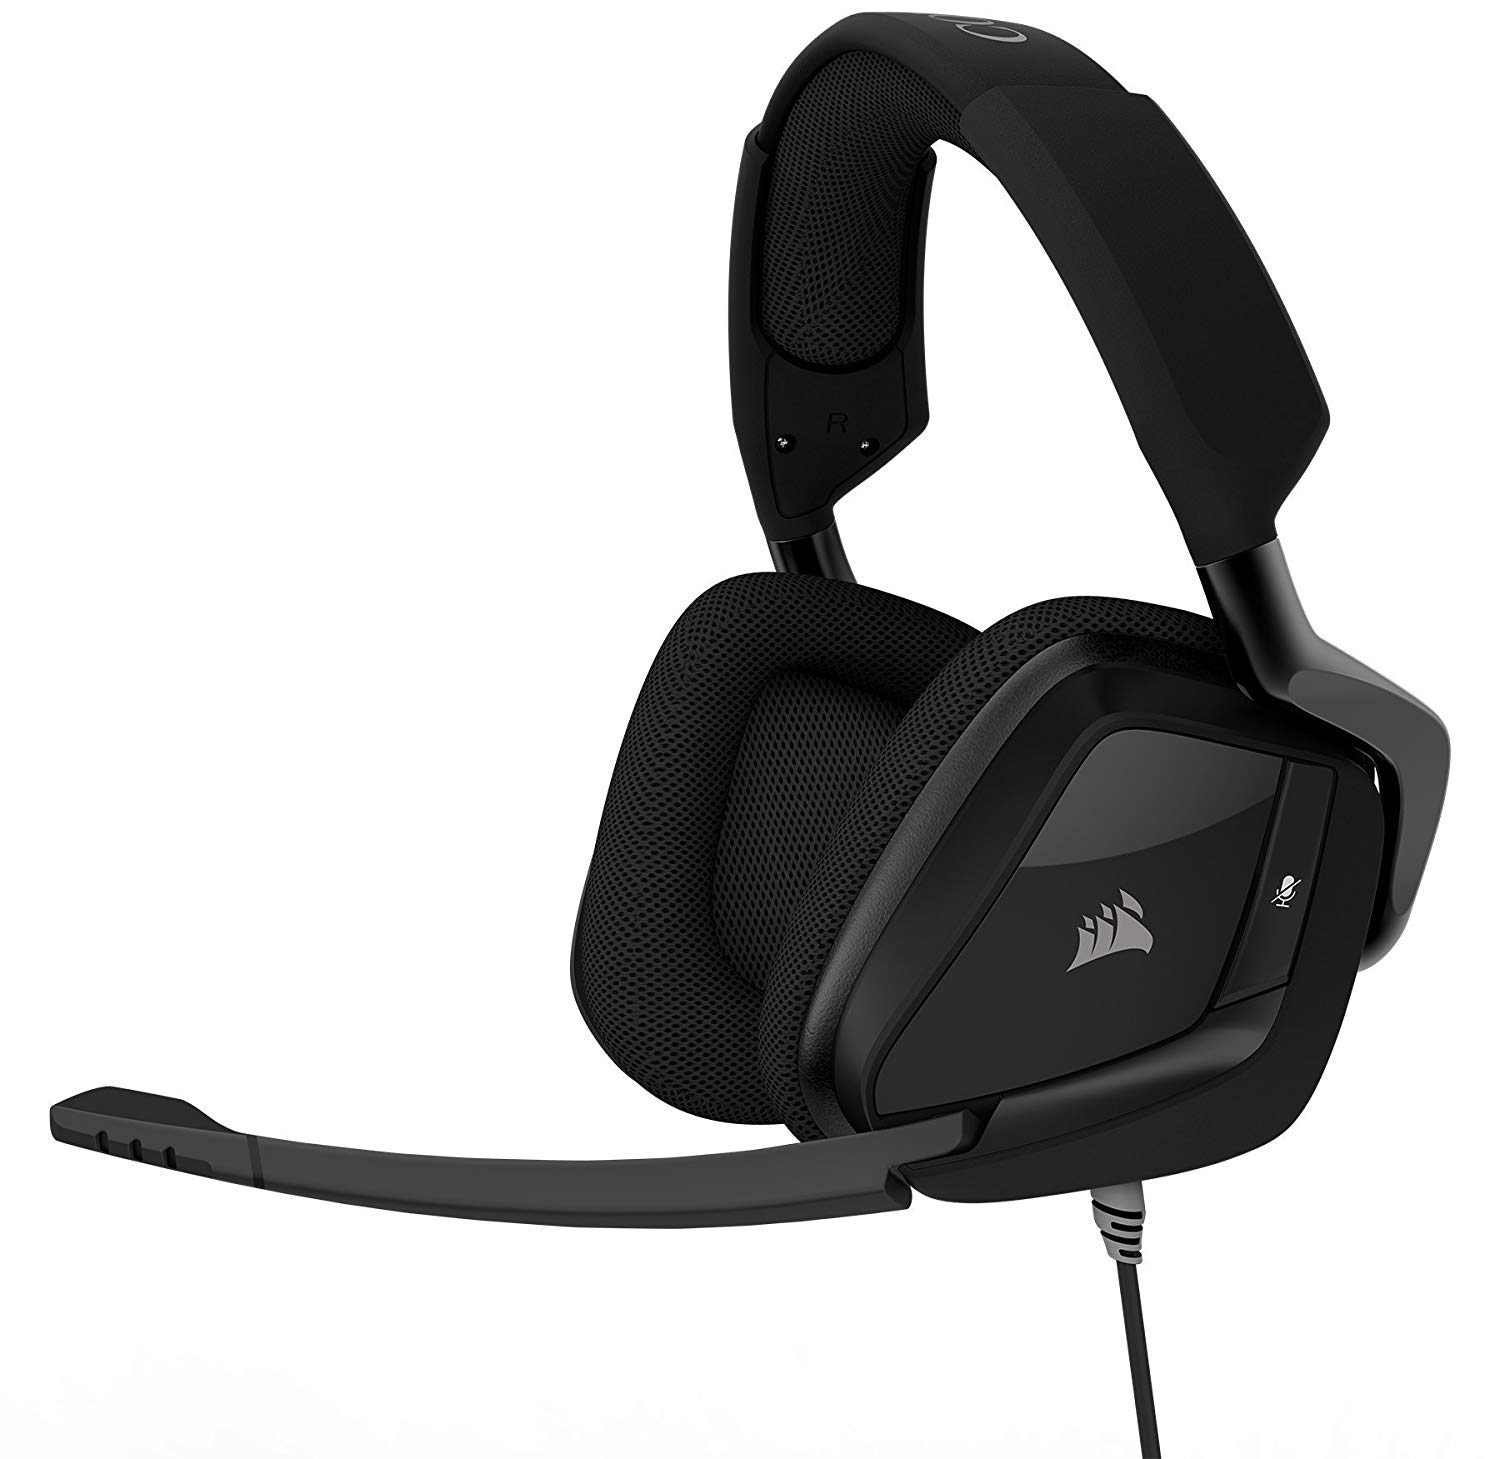 CORSAIR Void PRO Surround Gaming Headset - Dolby 7.1 Surround Sound Headphones for PC - Works with Xbox One, PS4, Nintendo Switch, iOS and Android - Carbon by Corsair